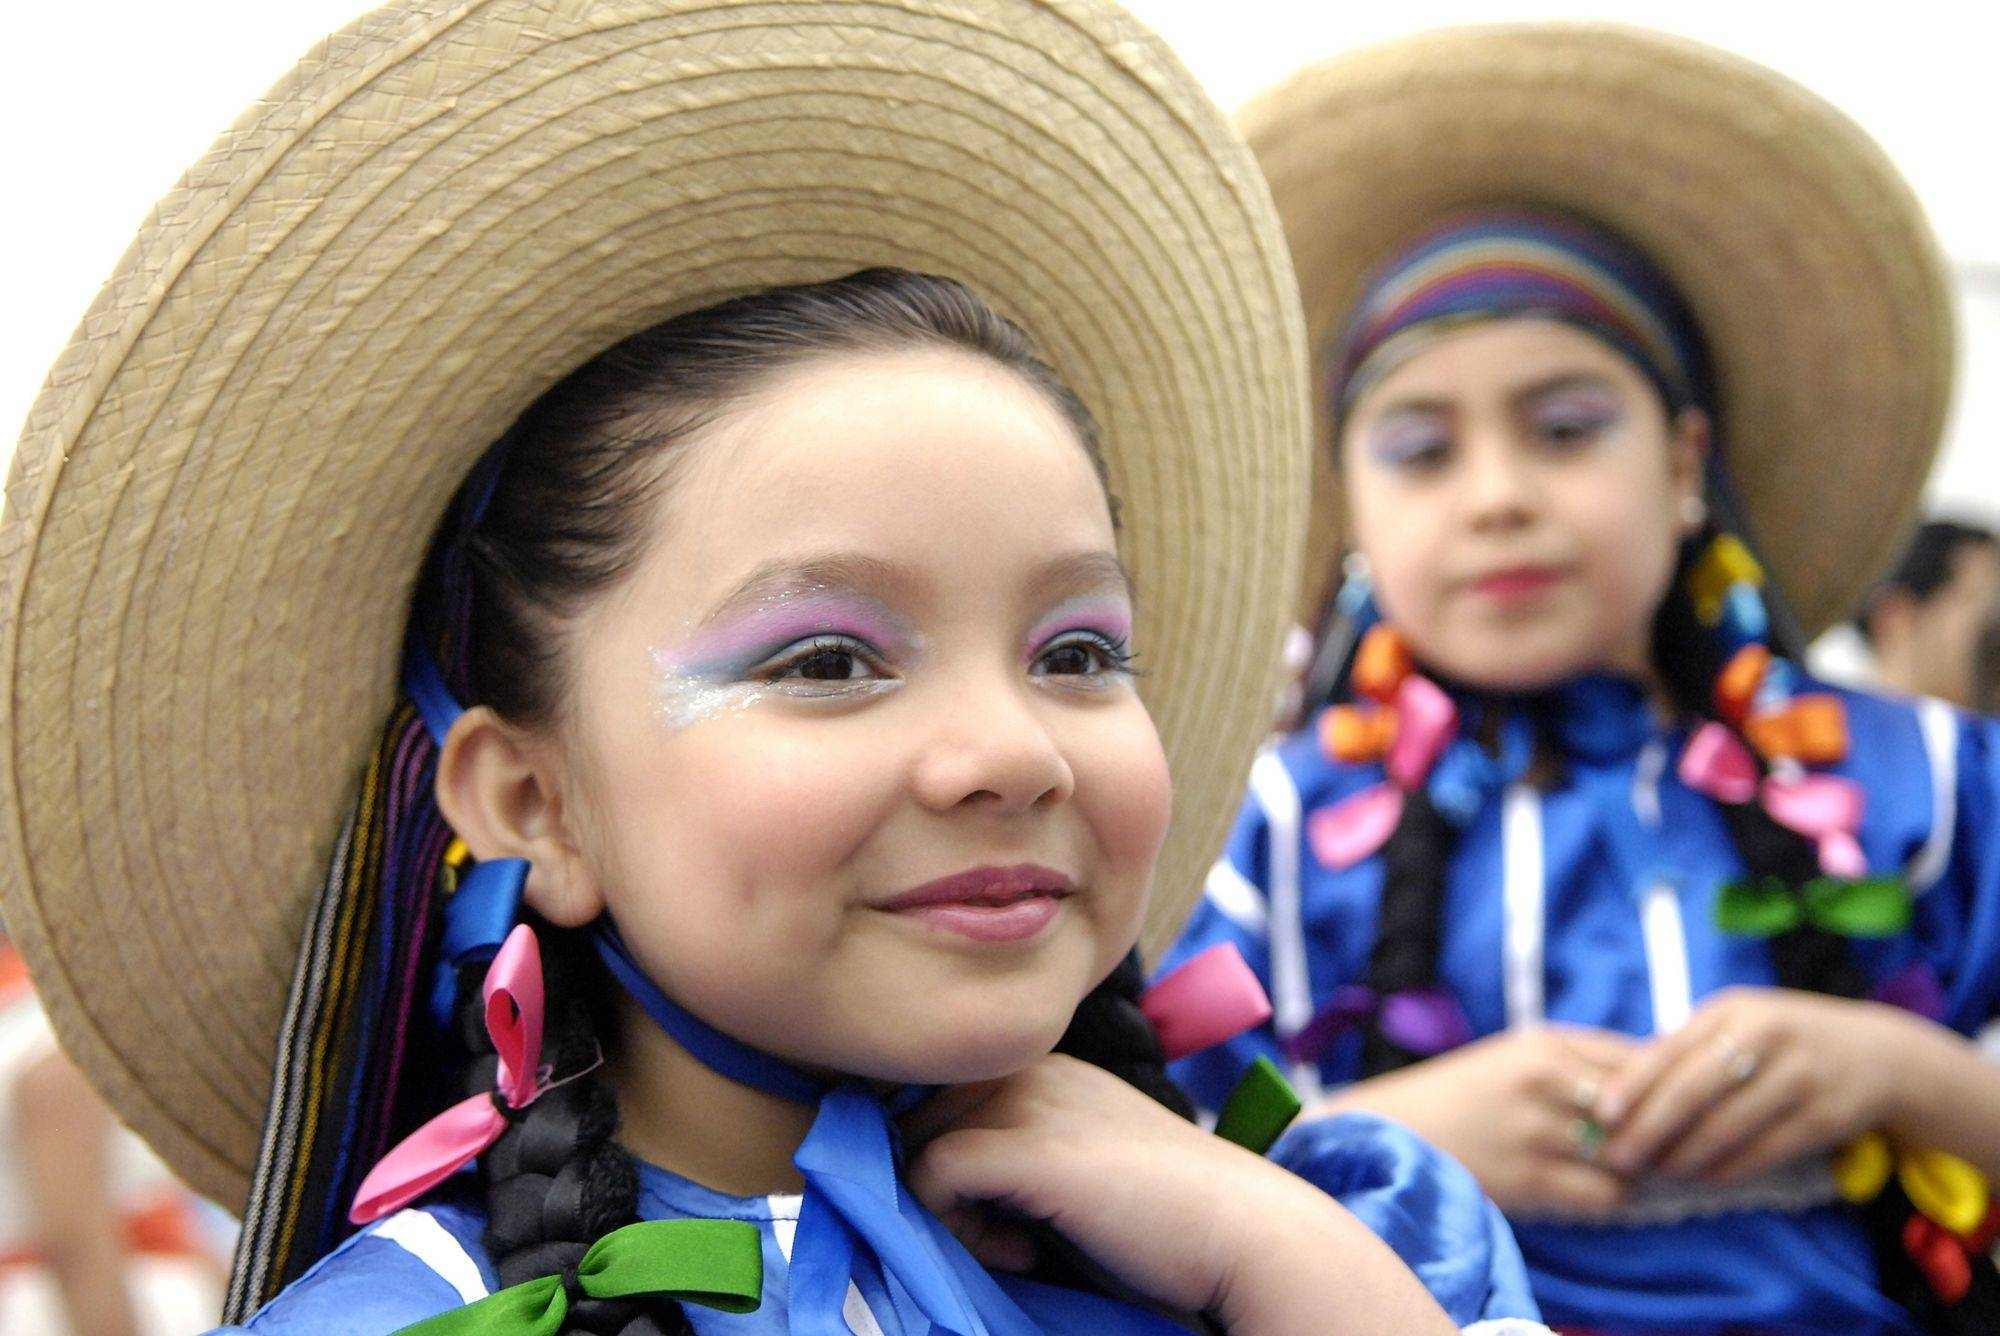 Jocelyn Celaya, 5, of Aurora waits for her group to perform at the El Dia los ninos (The Day of the Children) event in Aurora on Saturday, April 25. Jocelyn is with the Mexican dance ensemble Ballet Folklorico Quetzalcoatl and just took up dancing three months ago.